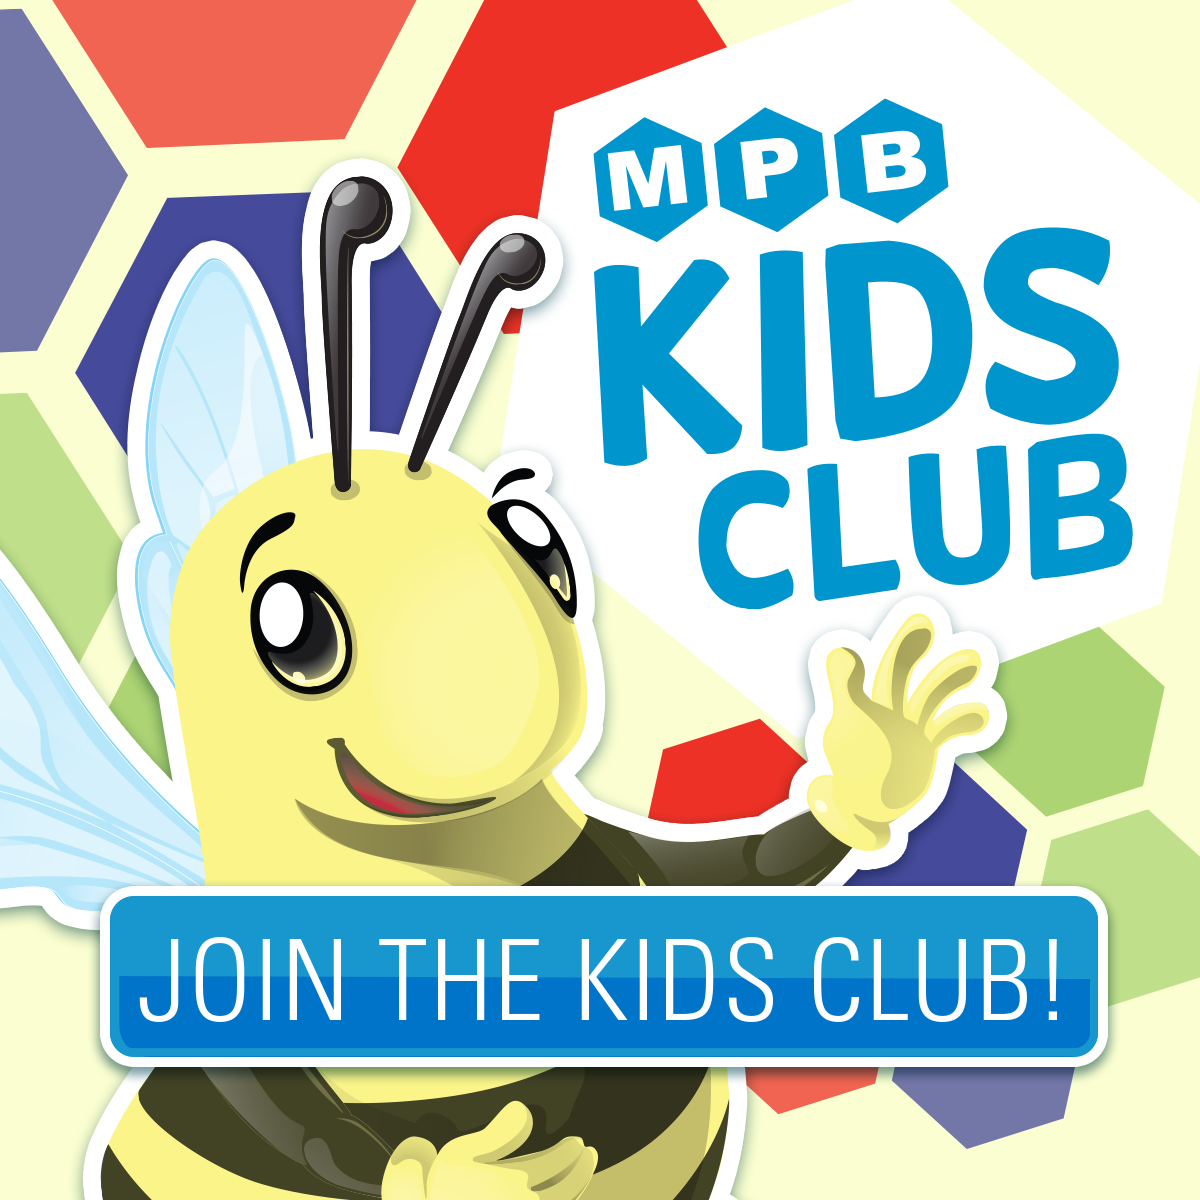 Sign-up for the MPB Kids Club!